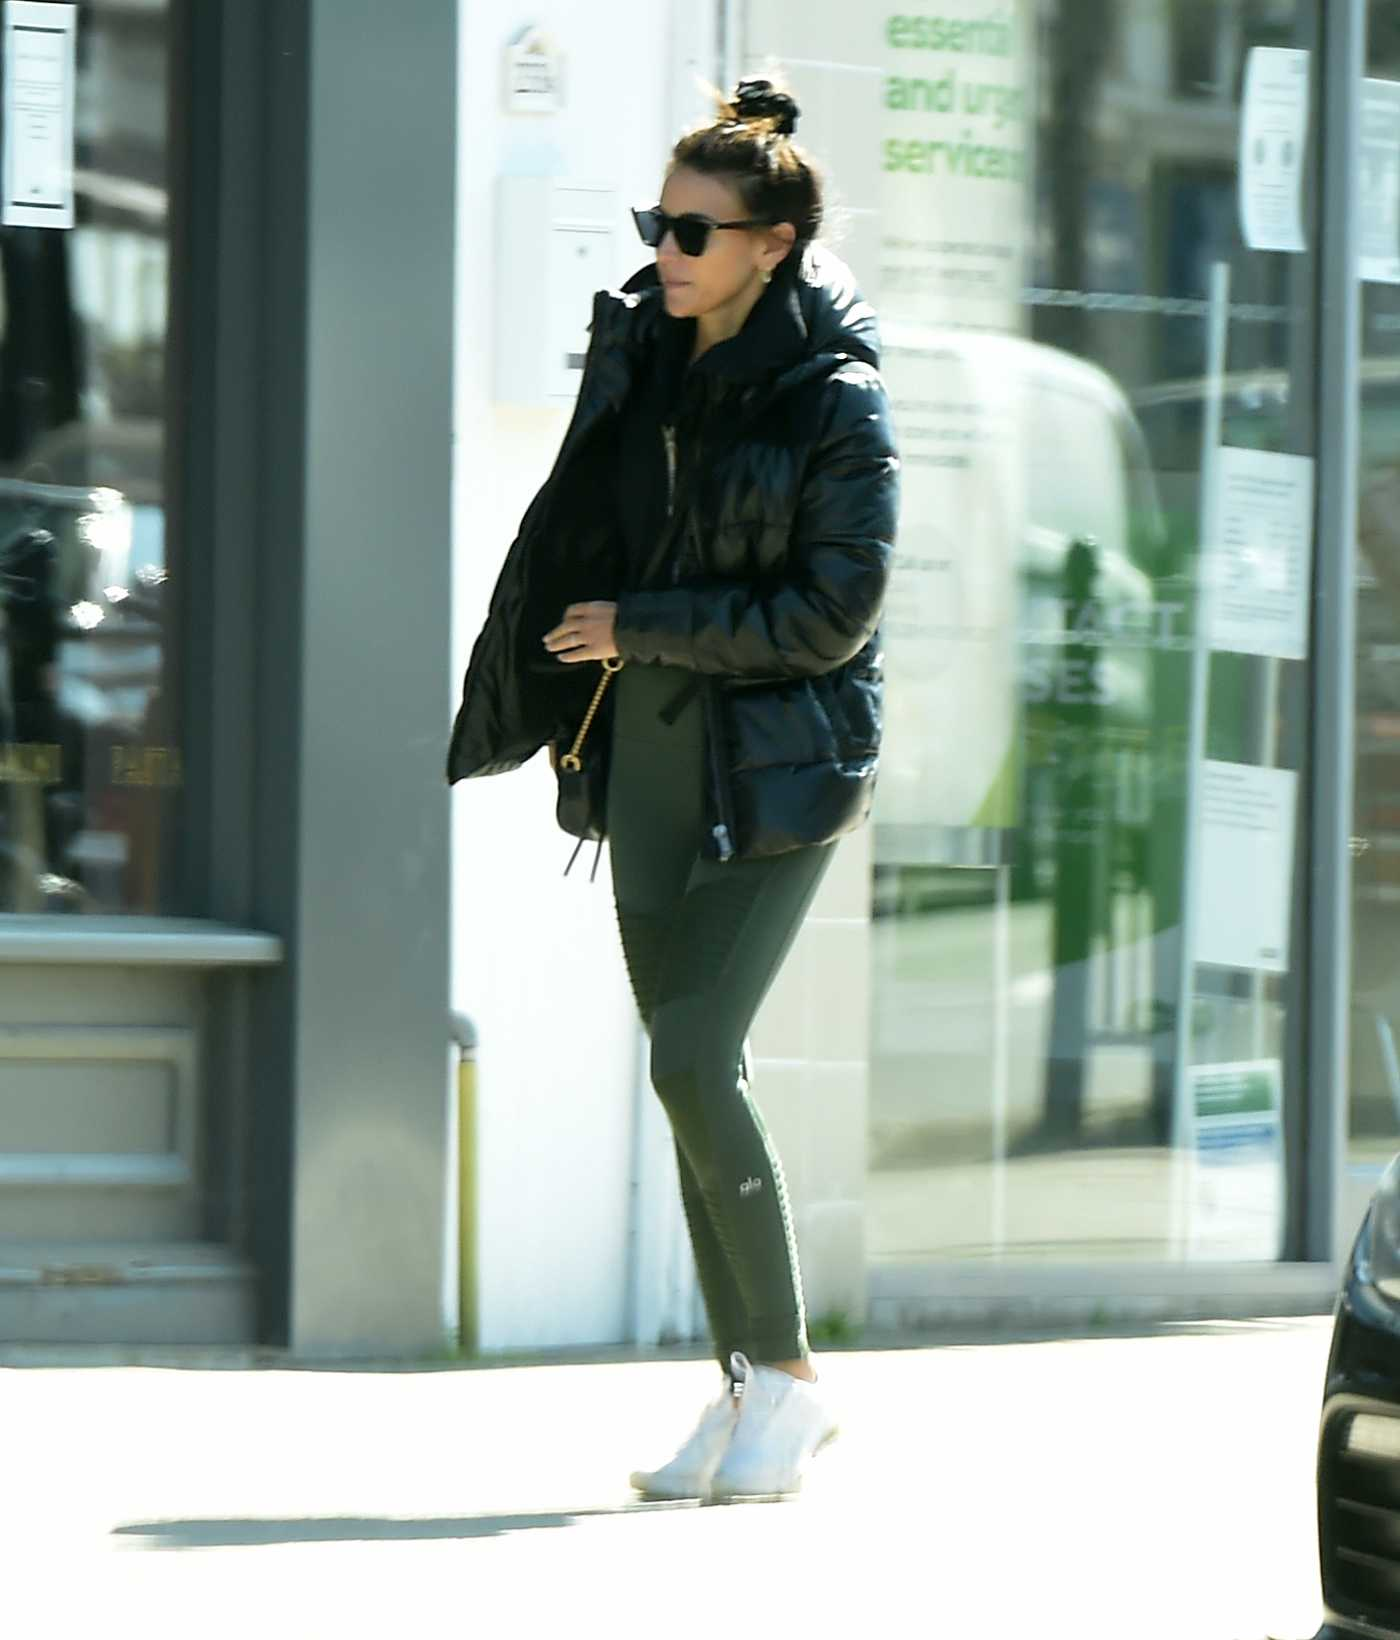 Michelle Keegan in a Black Puffer Jacket Was Seen Out in Essex 04/21/2020